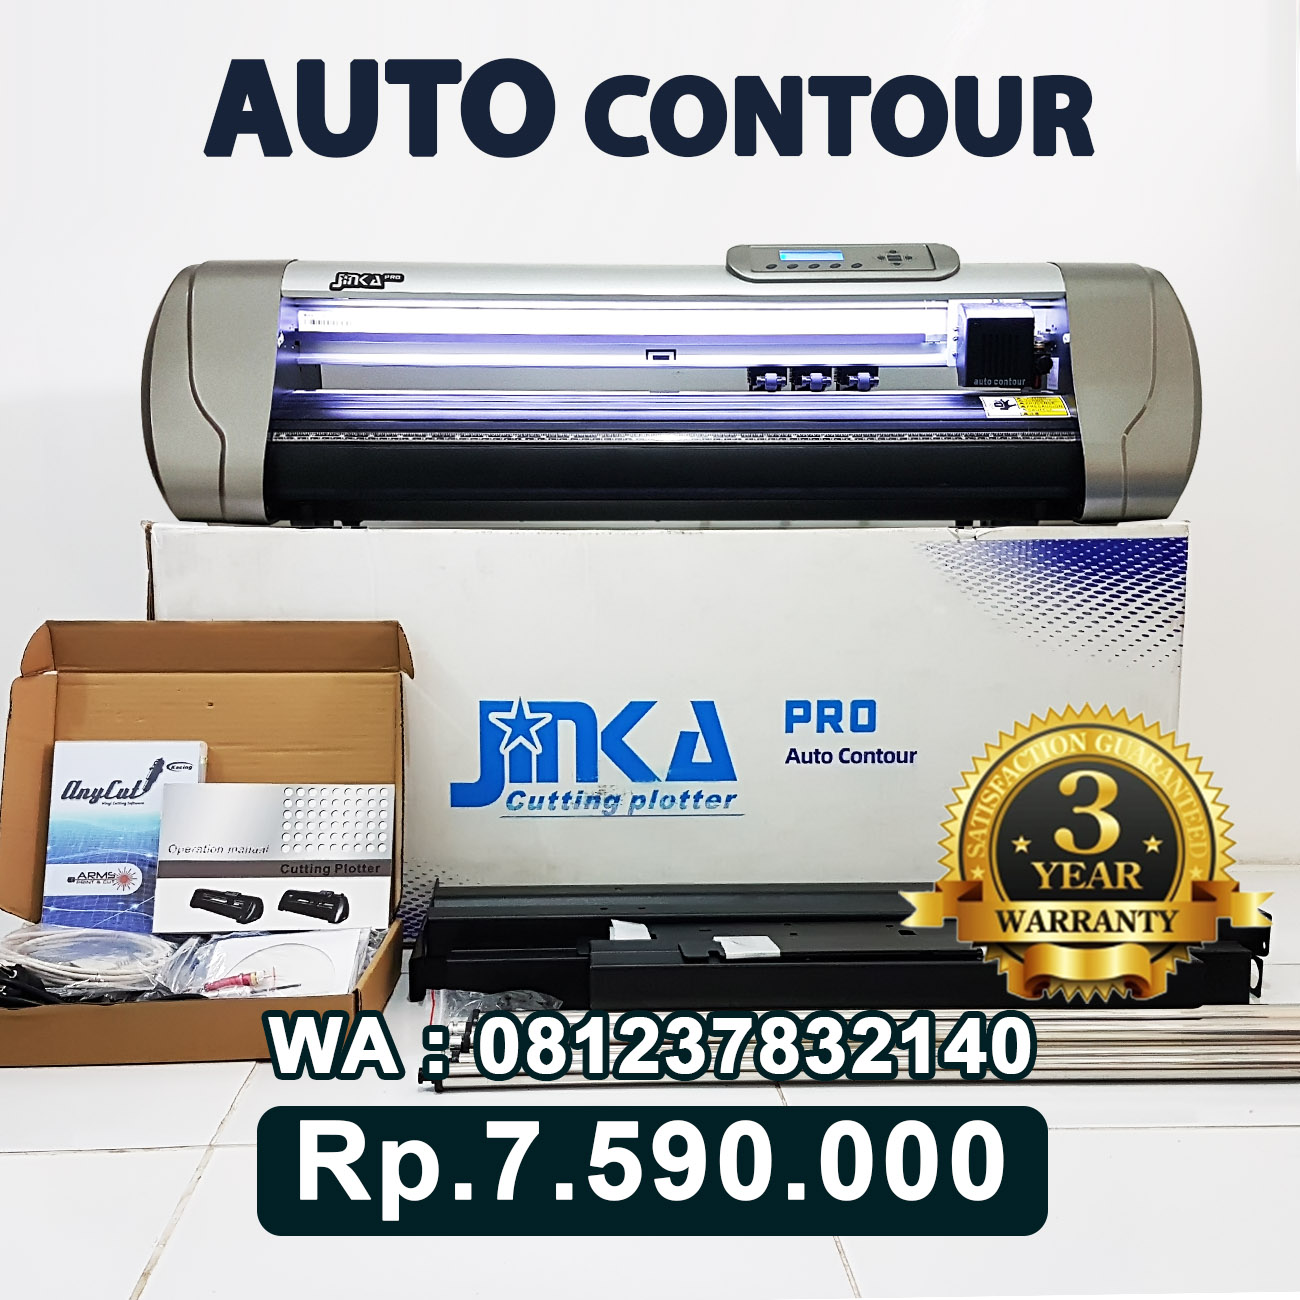 JUAL MESIN CUTTING STICKER JINKA PRO 722 LED AUTO CONTOUR CUT Tanjung Selor